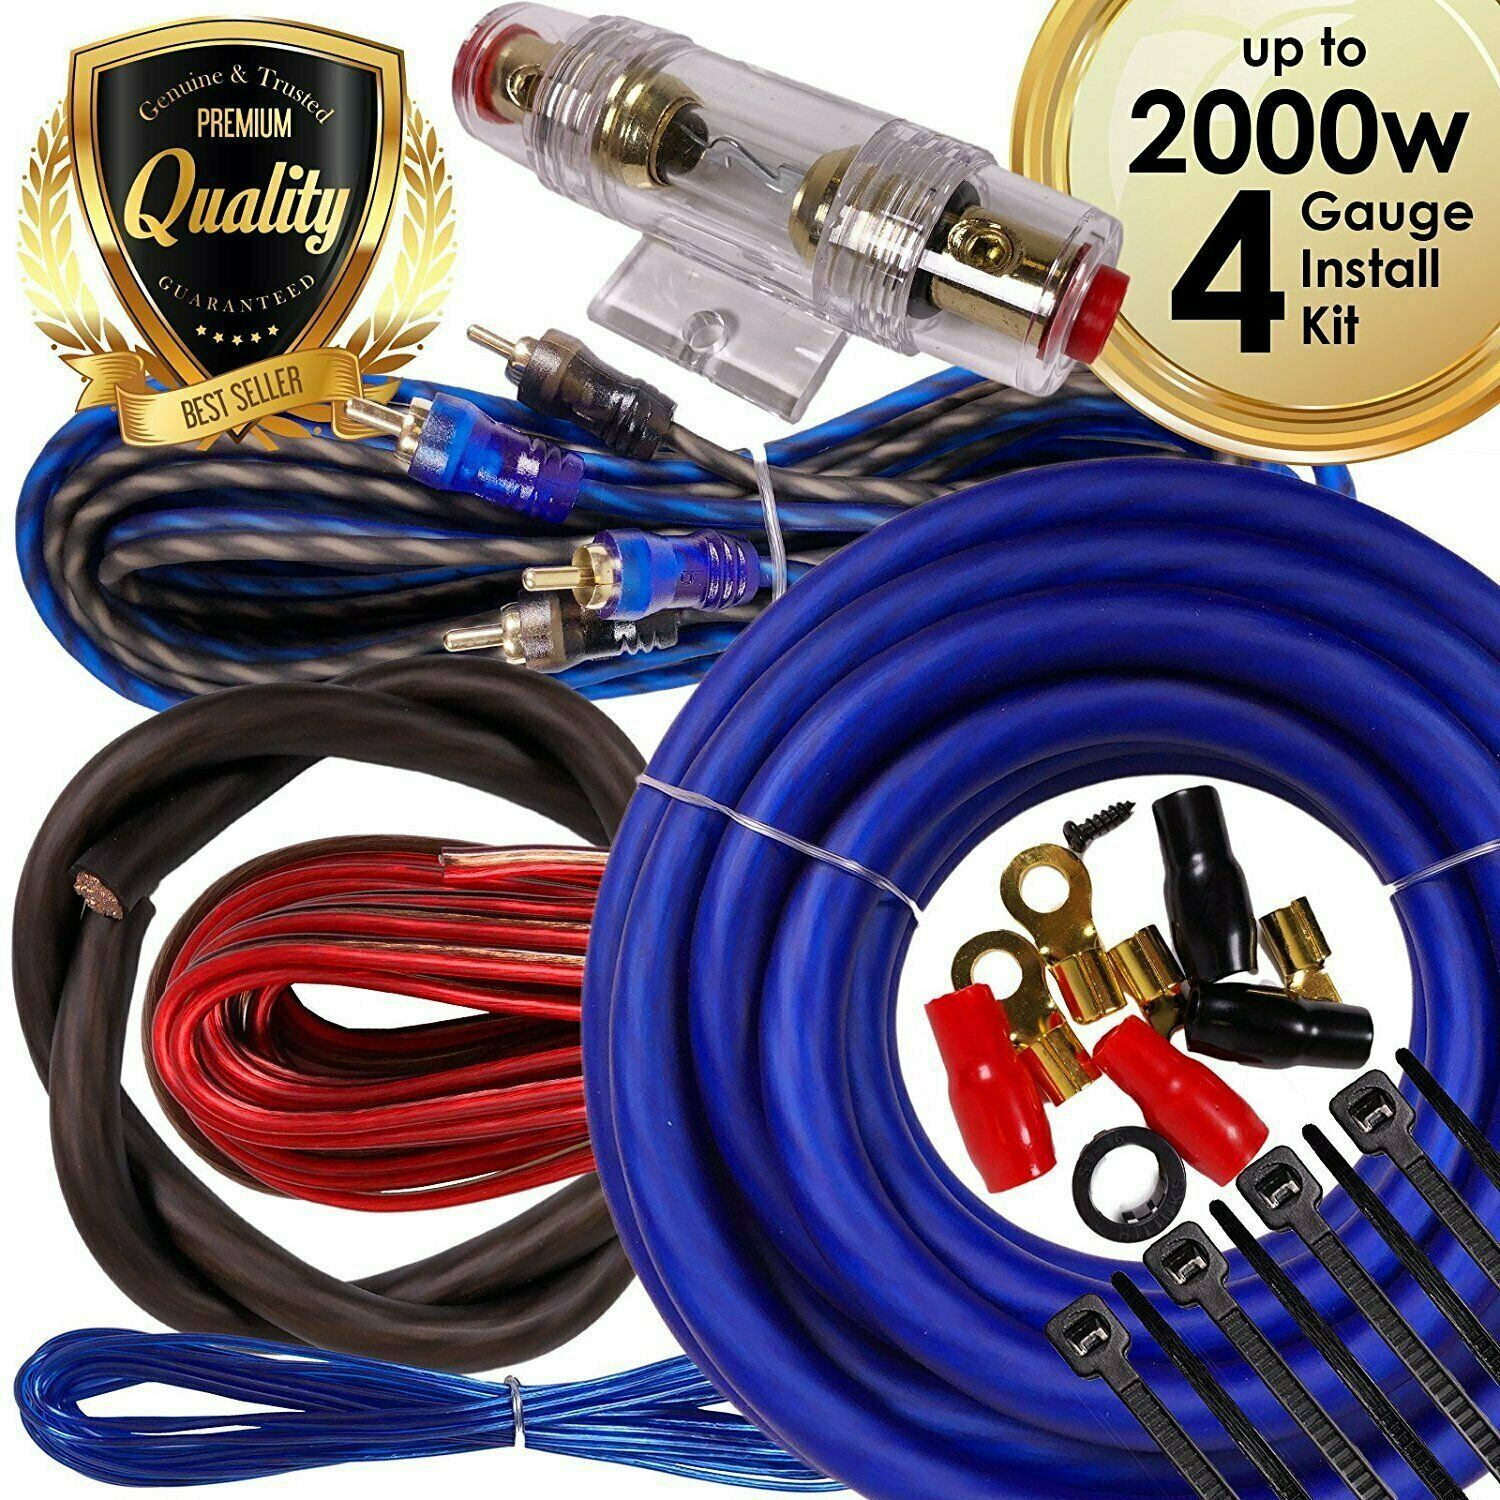 Complete 2000w 4 Gauge Car Amplifier Installation Wiring Kit Amp Pk2 Awg Wire Install 4g Ebay Ga Blue 1 Of 9only 3 Available